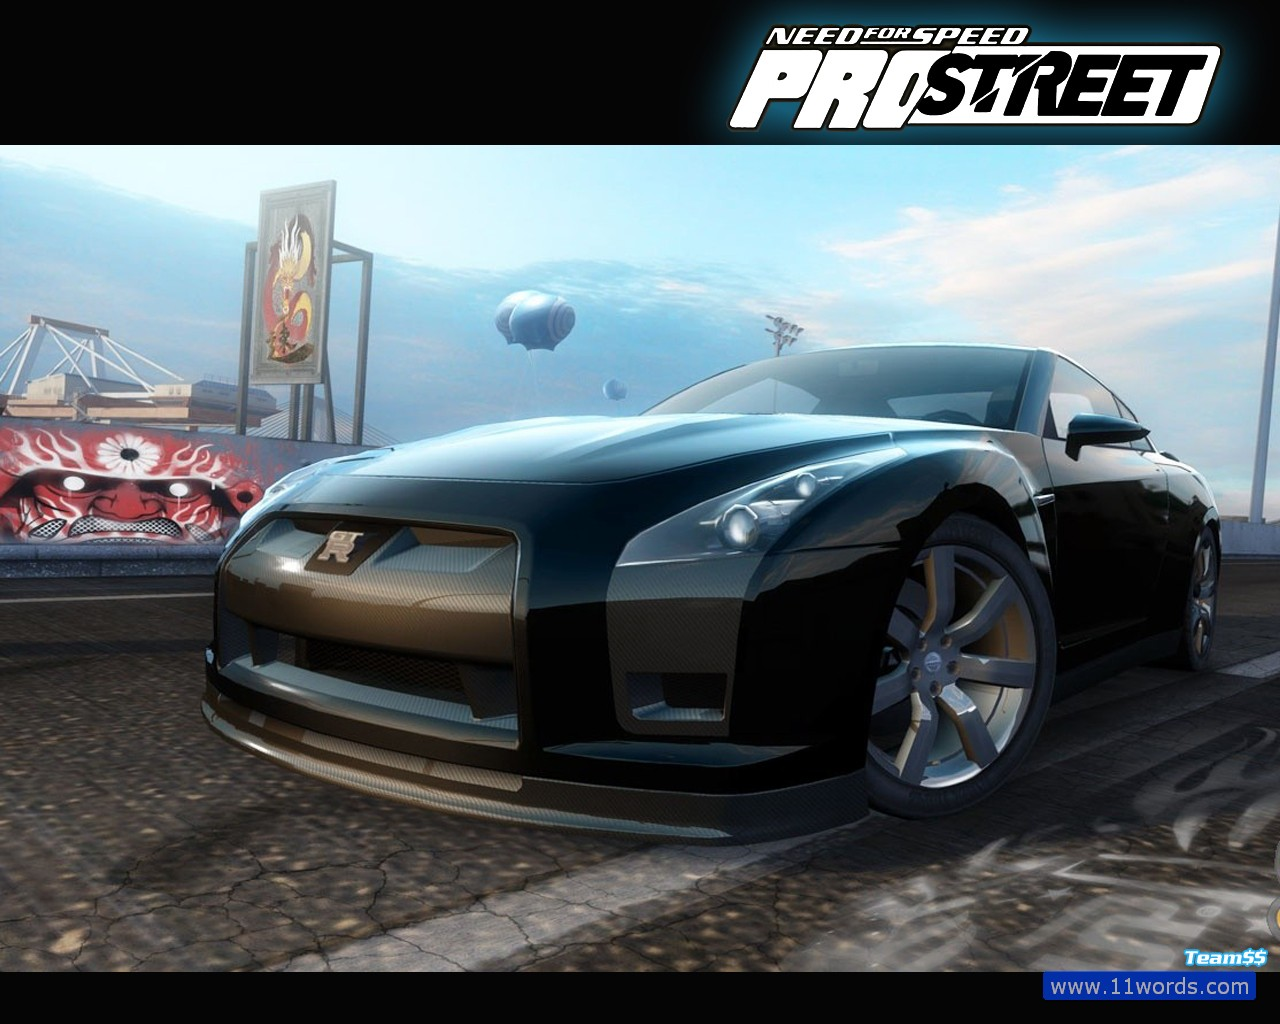 digital hd wallpapers: need for speed prostreet wallpapers